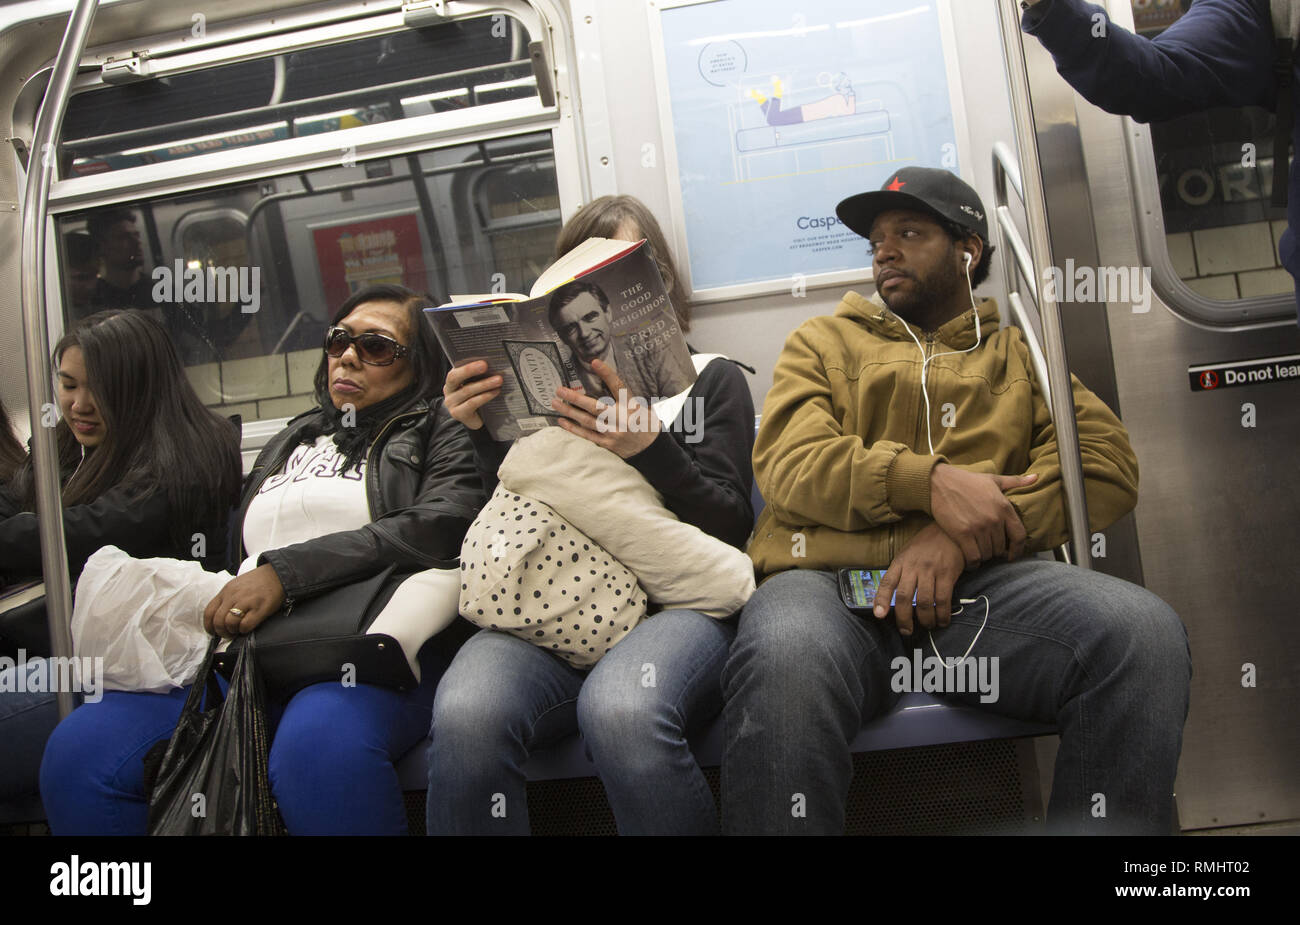 Woman Reads The Book The Good Neighbor A Biography Of Fred Rogers Mr Rogers The American Children S Show Host Ny City Subway Train Stock Photo Alamy